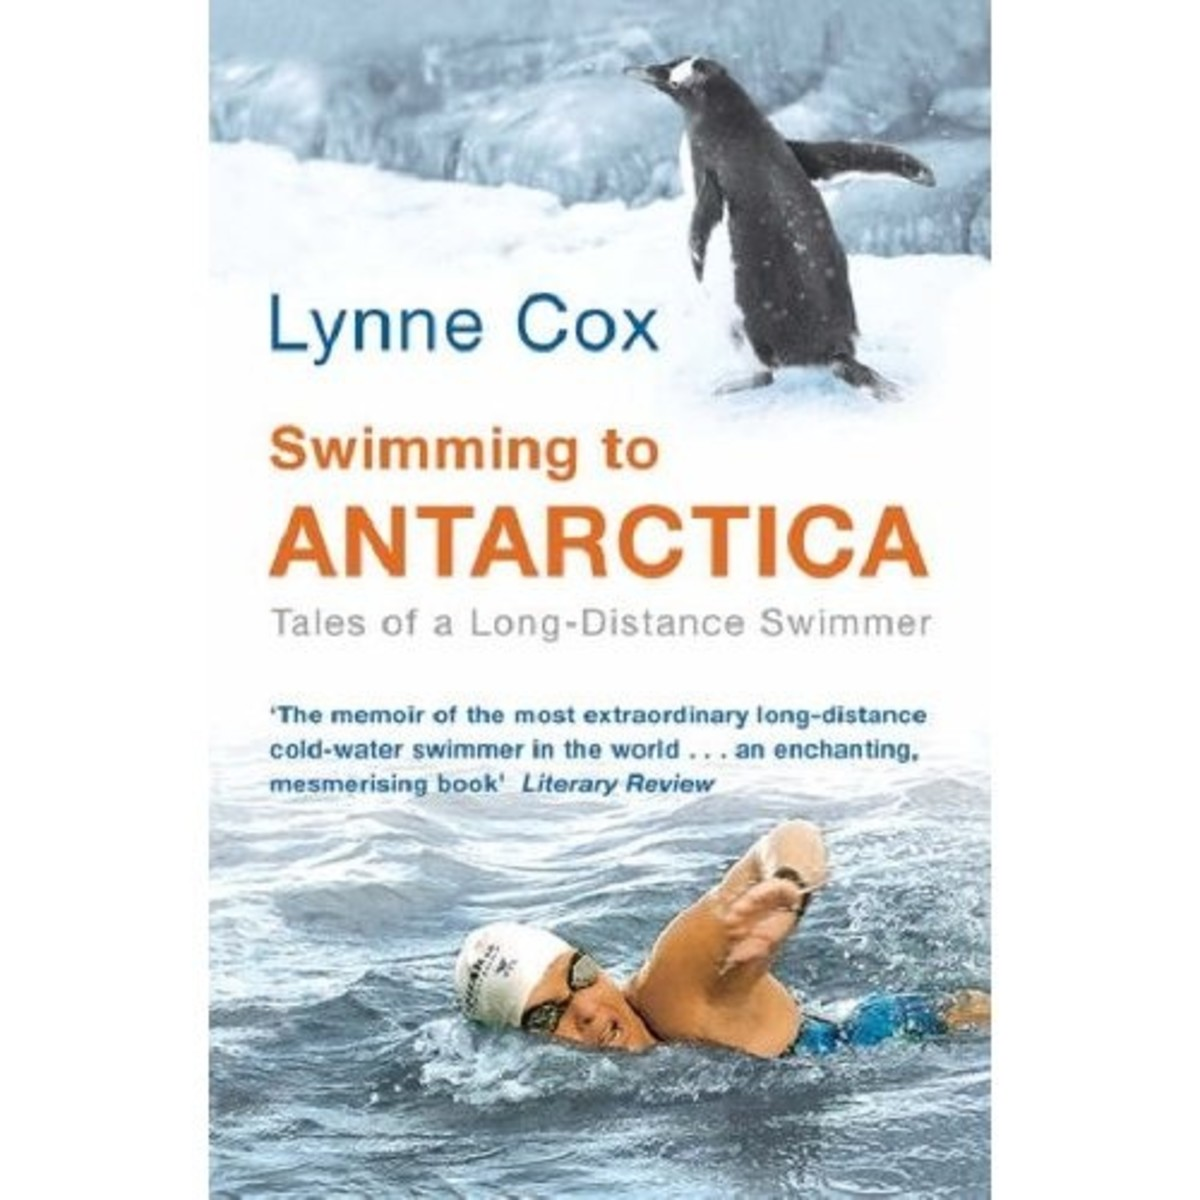 Lynn Cox has shown that people can train themselves to swim even in the cold waters of the Arctic and Antarctic